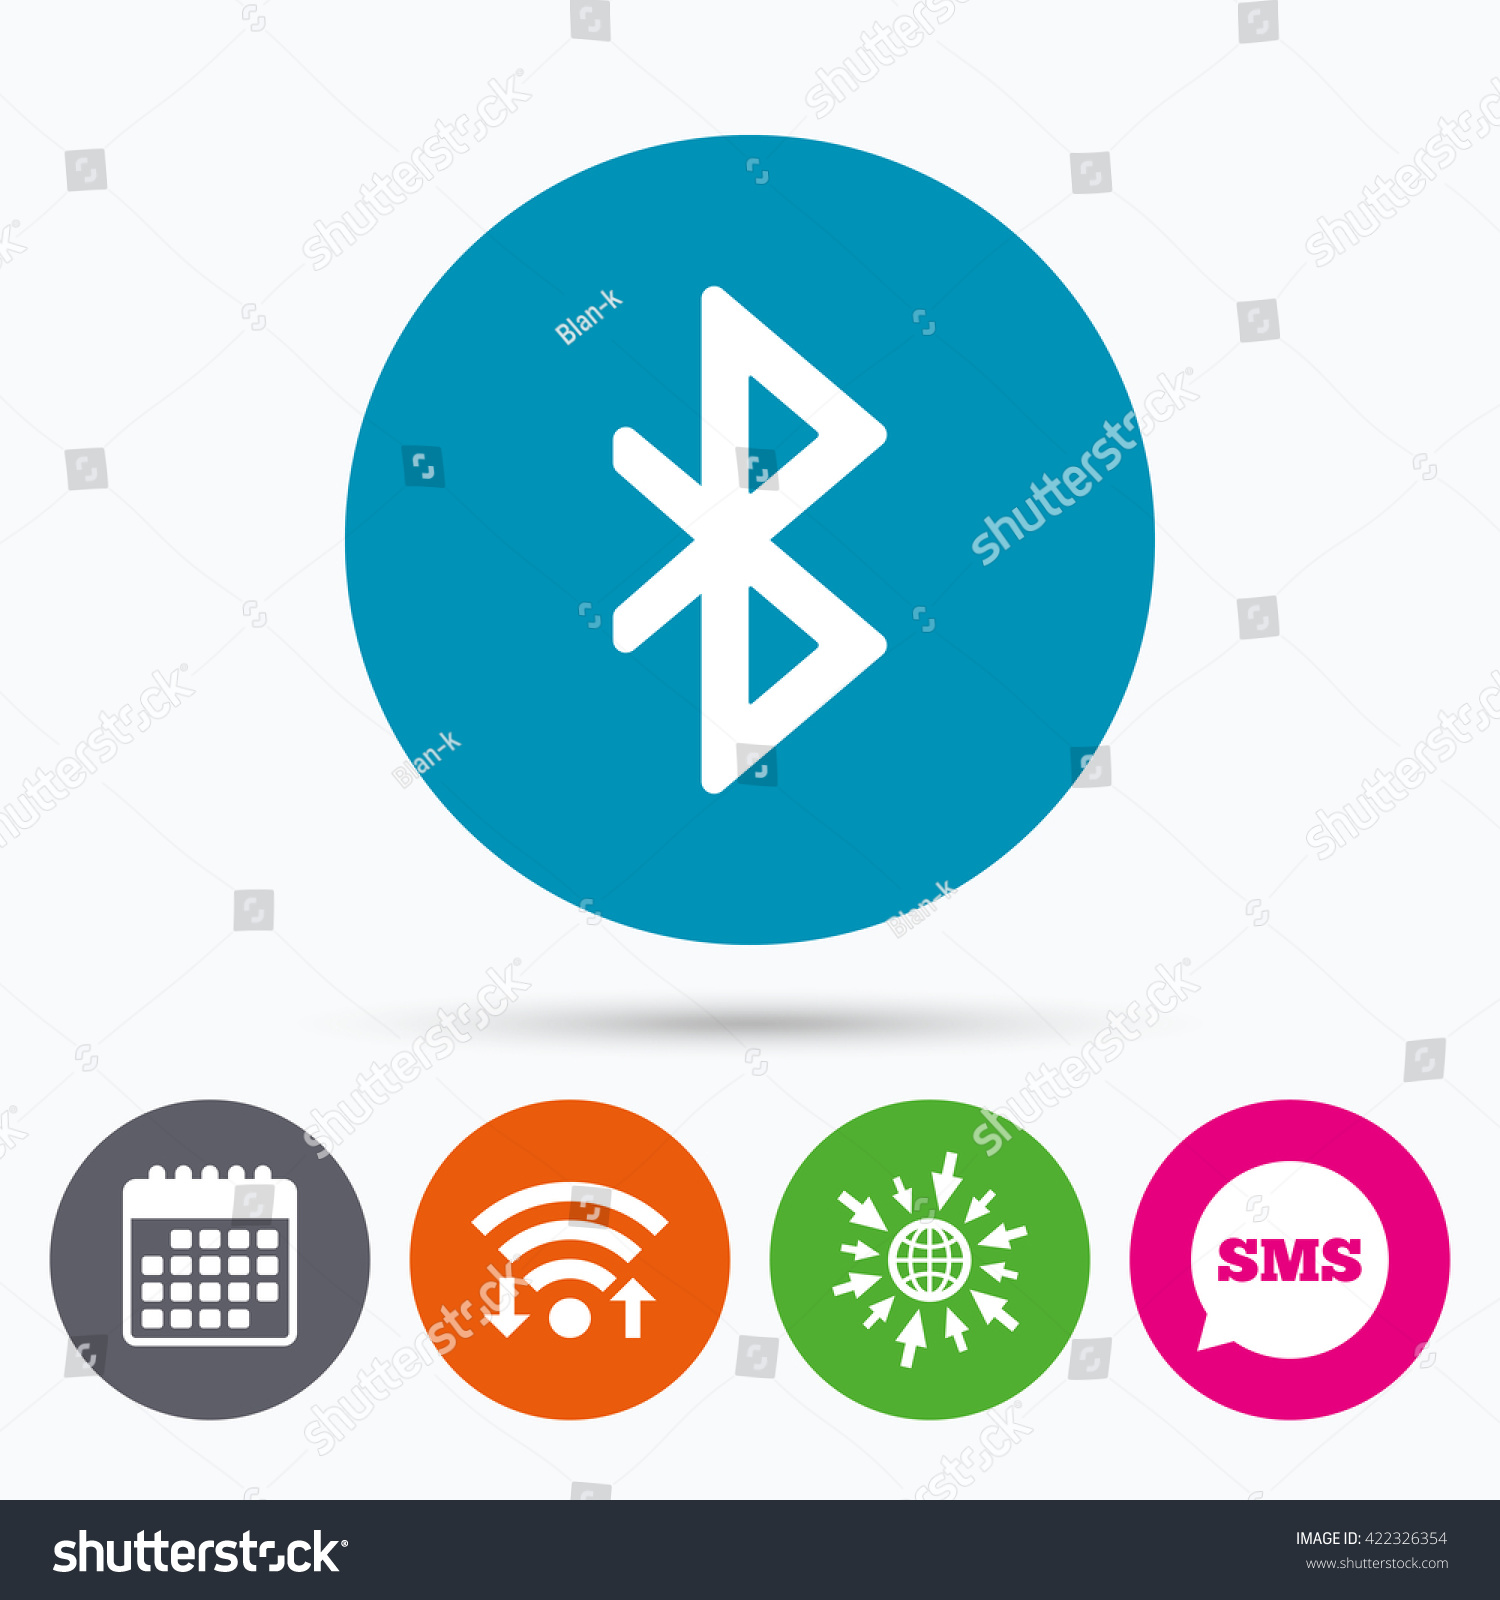 Wifi sms calendar icons bluetooth sign stock illustration wifi sms and calendar icons bluetooth sign icon mobile network symbol data biocorpaavc